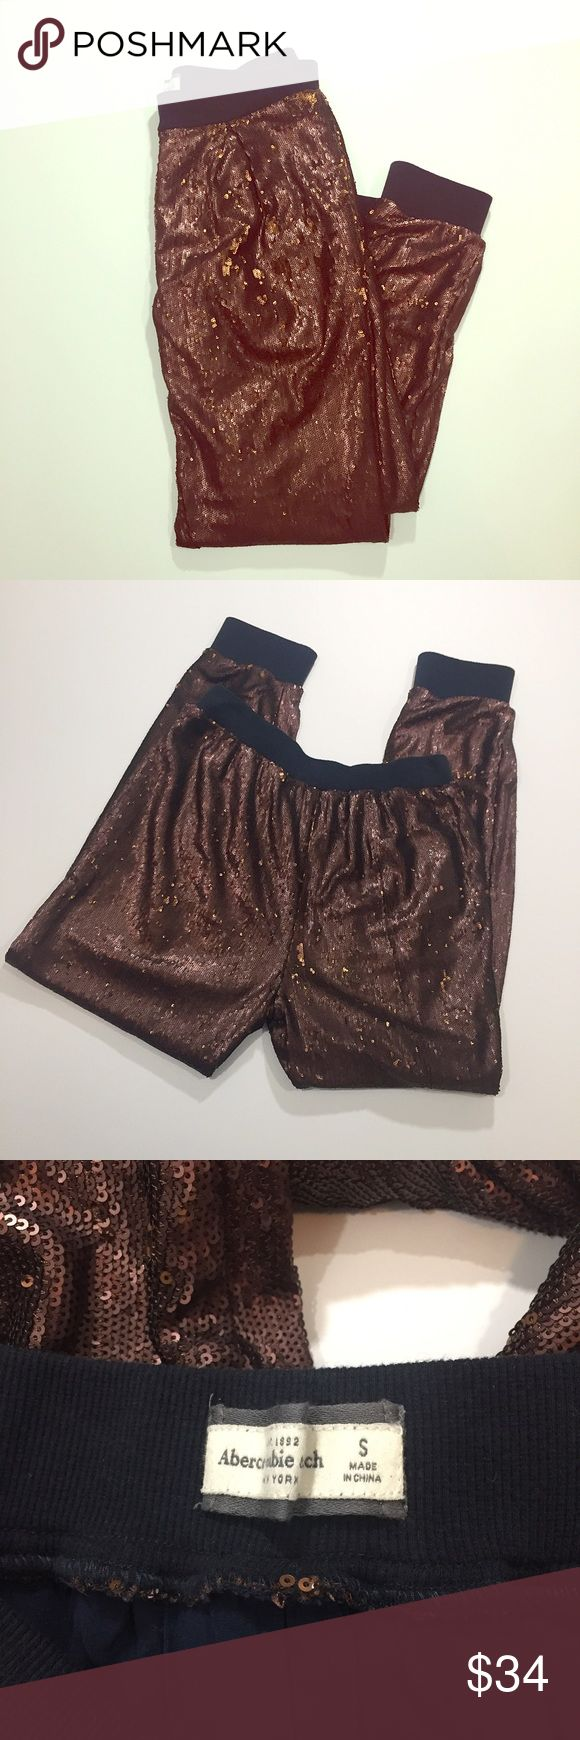 """A&F // Full Sequin Shine Copper Brown Jogger Pants Like new condition! Be the life of the party in these full sequin, jogger-style pants from Abercrombie & Fitch. Pull on style with rubbed waistband and ankle cuffs. Machine washable. About 26"""" inseam, 12"""" rise, 14.5"""" across waistband. 🚫trades🚫 smoke free home Abercrombie & Fitch Pants Track Pants & Joggers"""